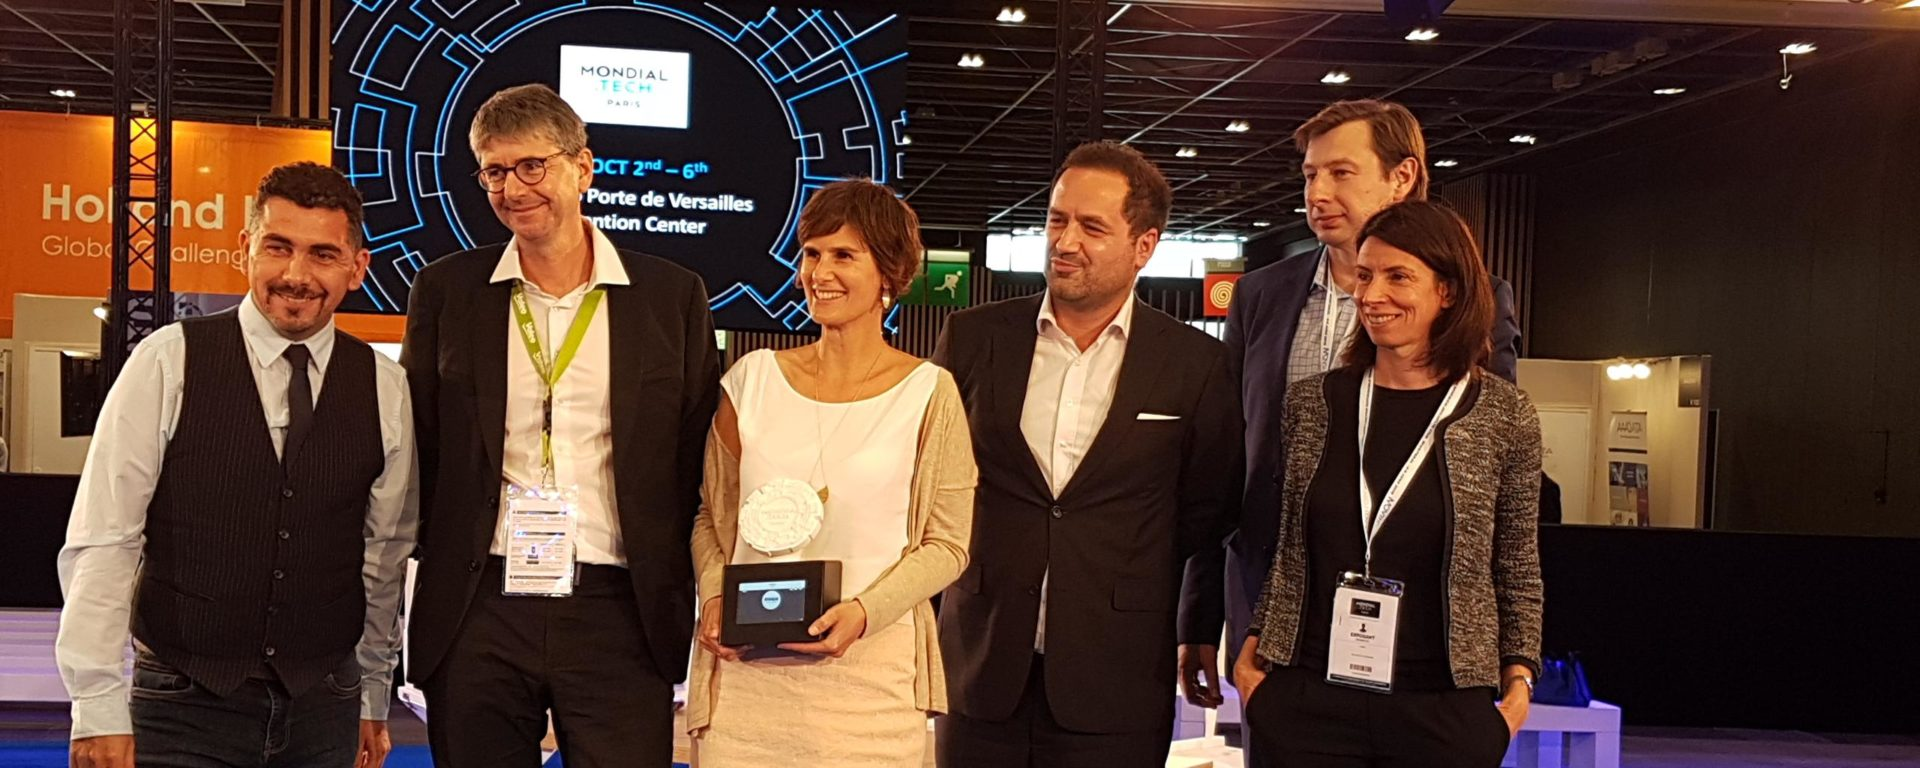 Mondial tech award win